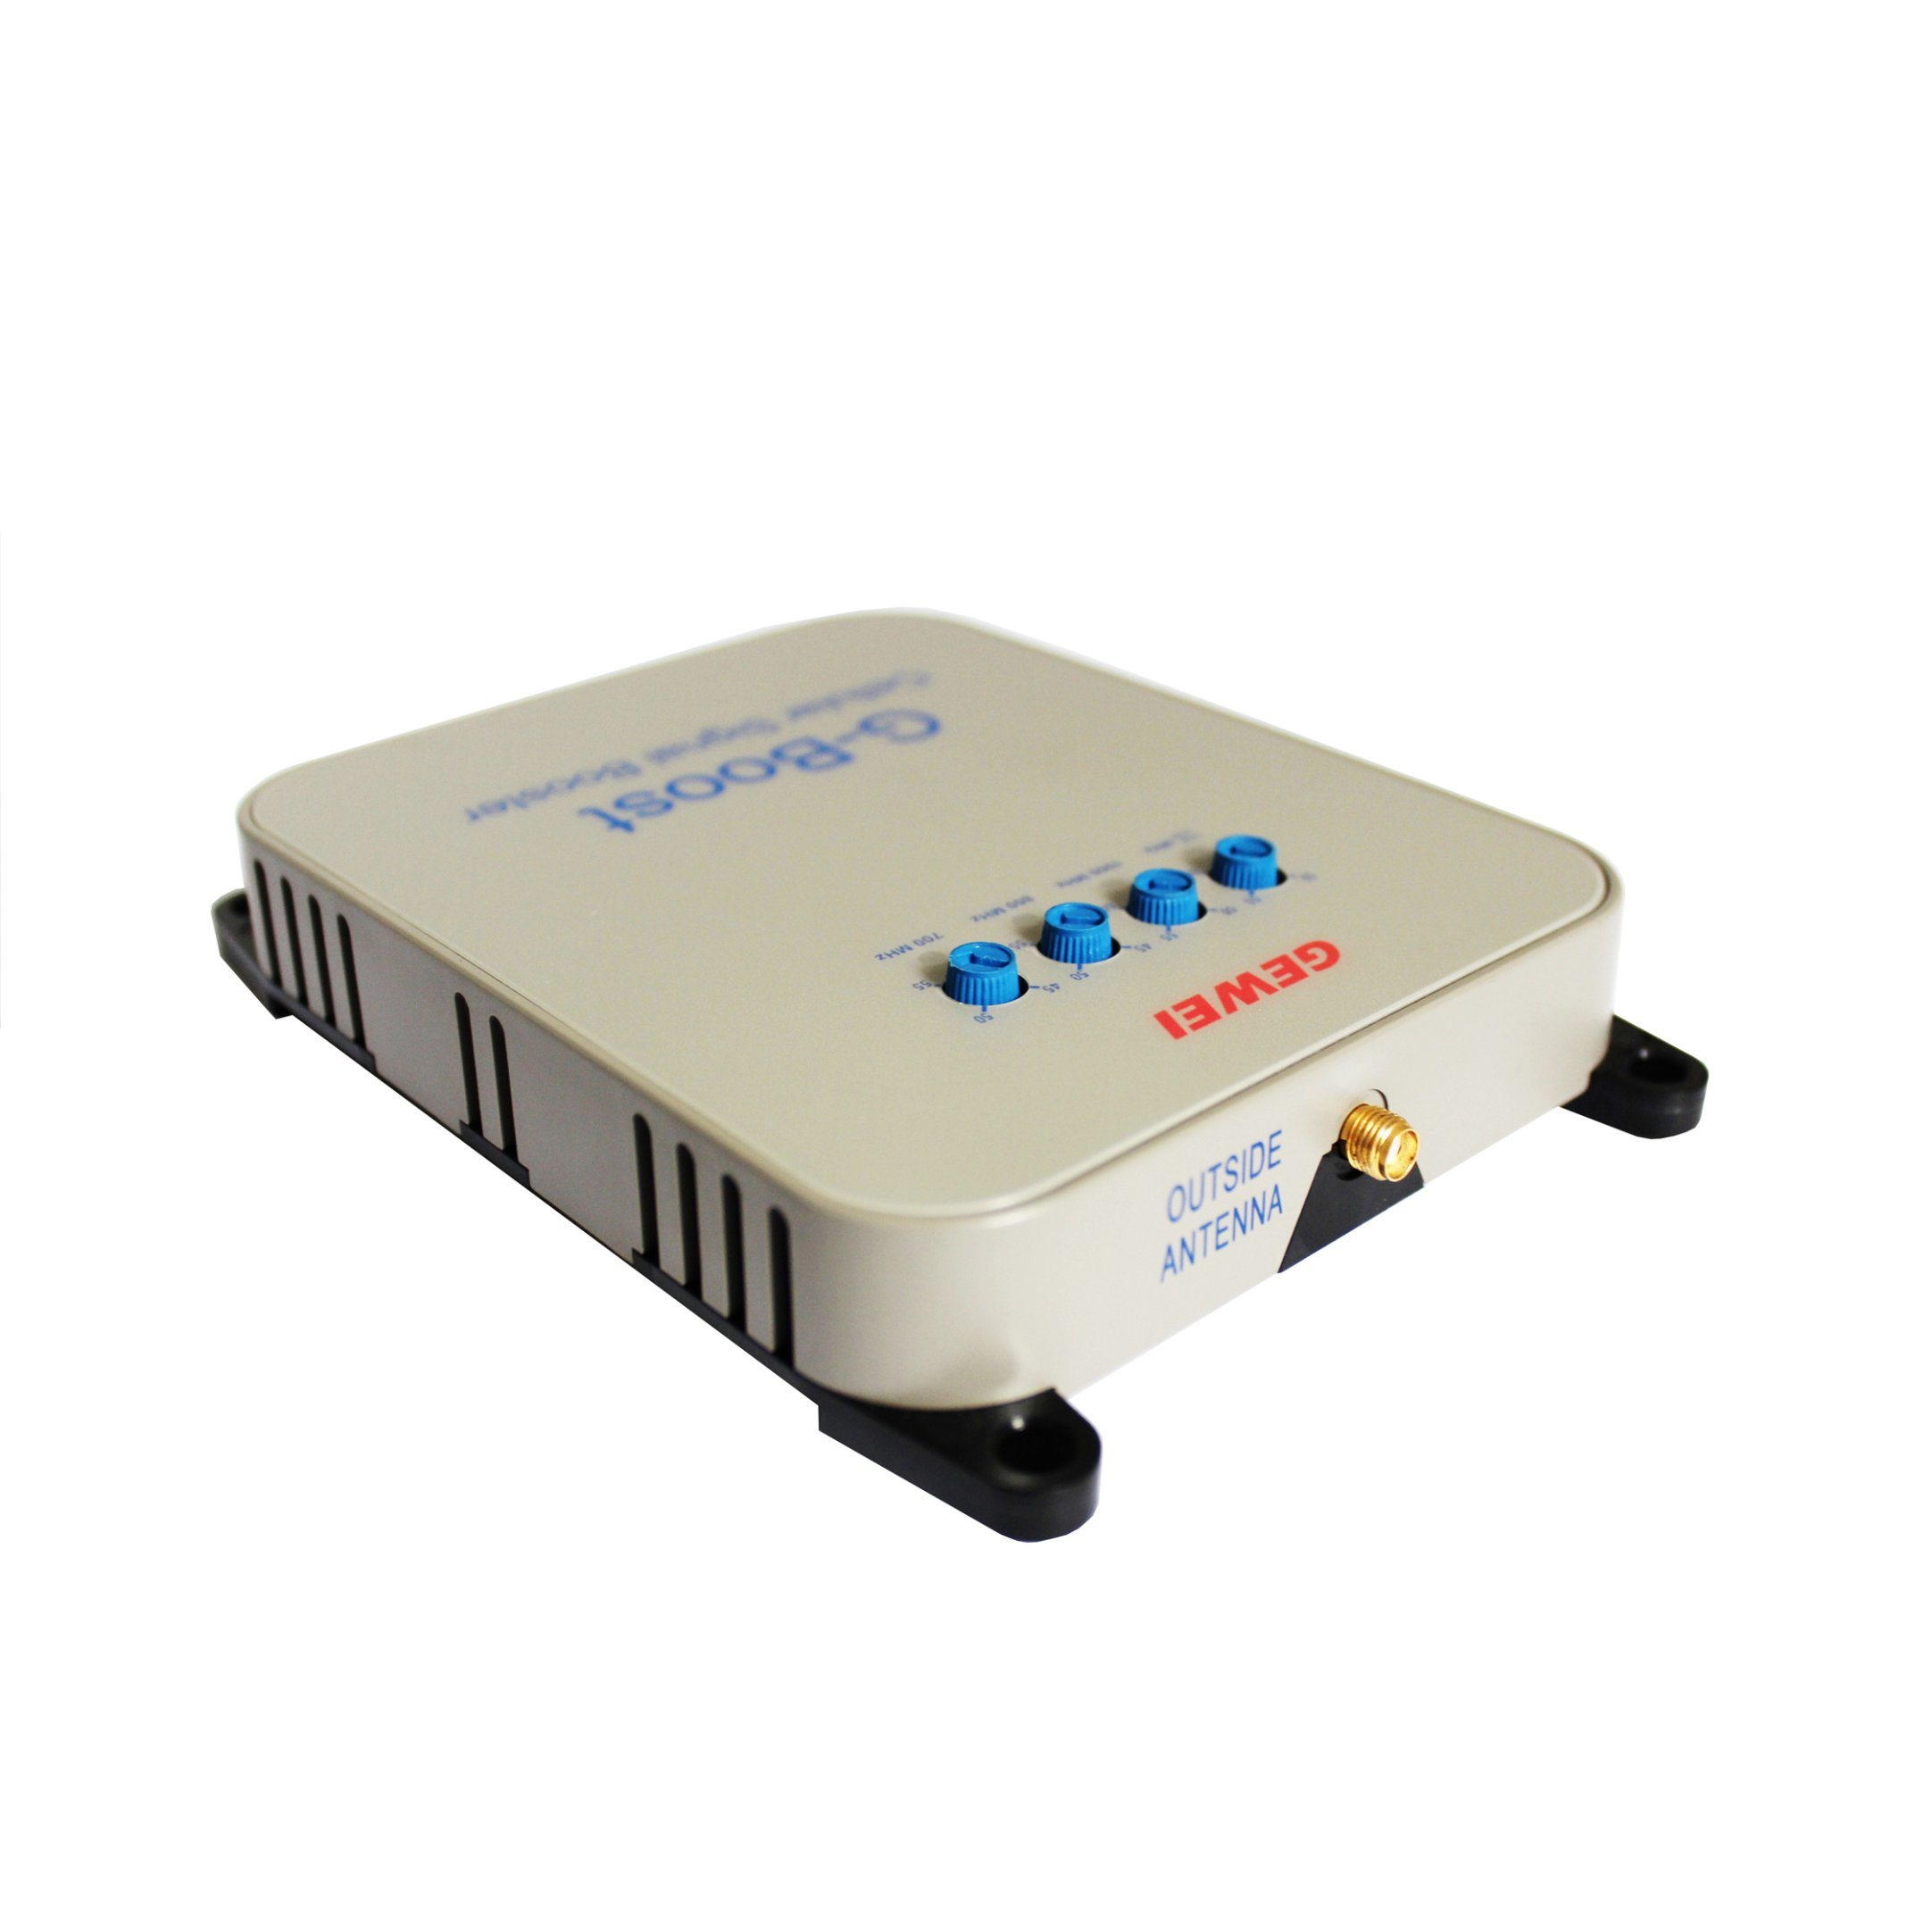 700/850/1900/2100MHz 5-Band Cellphone Signal Booster for All South&North America Carriers Signal Booster Mobile Signal Booster